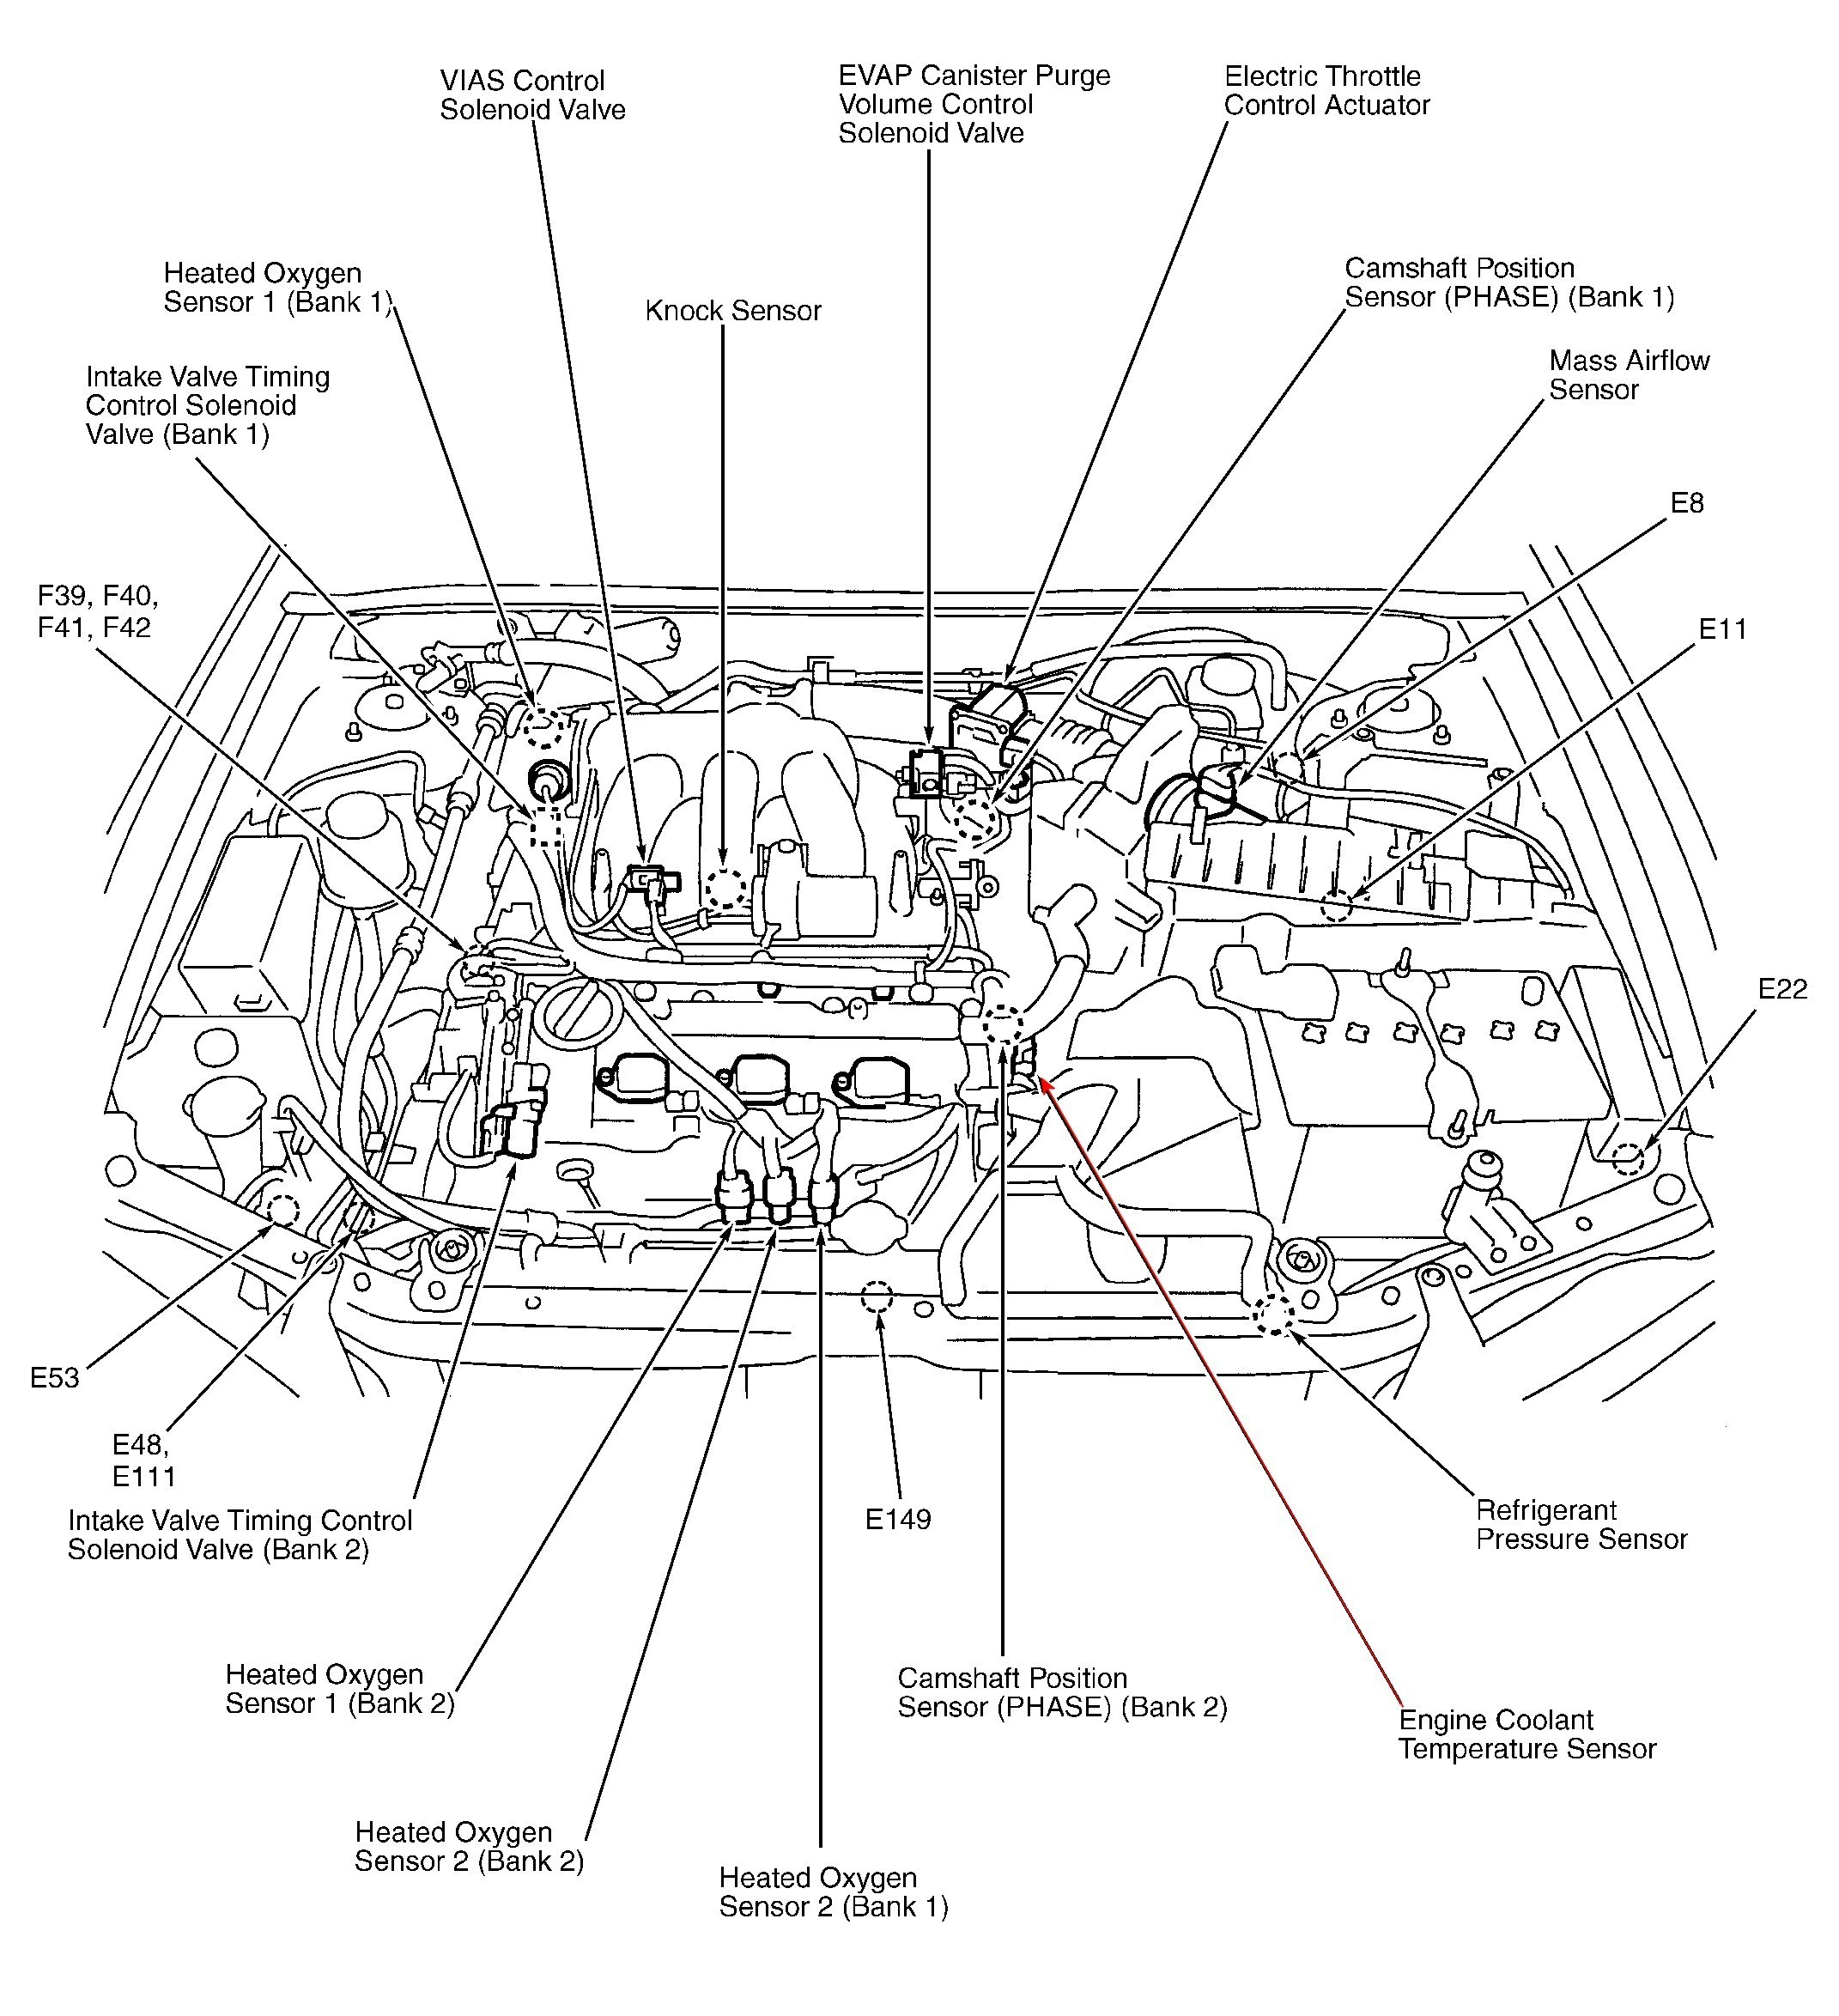 2010 Jeep Patriot Engine Diagram - Wiring Diagram Recent deep-crowd -  deep-crowd.cosavedereanapoli.itdeep-crowd.cosavedereanapoli.it